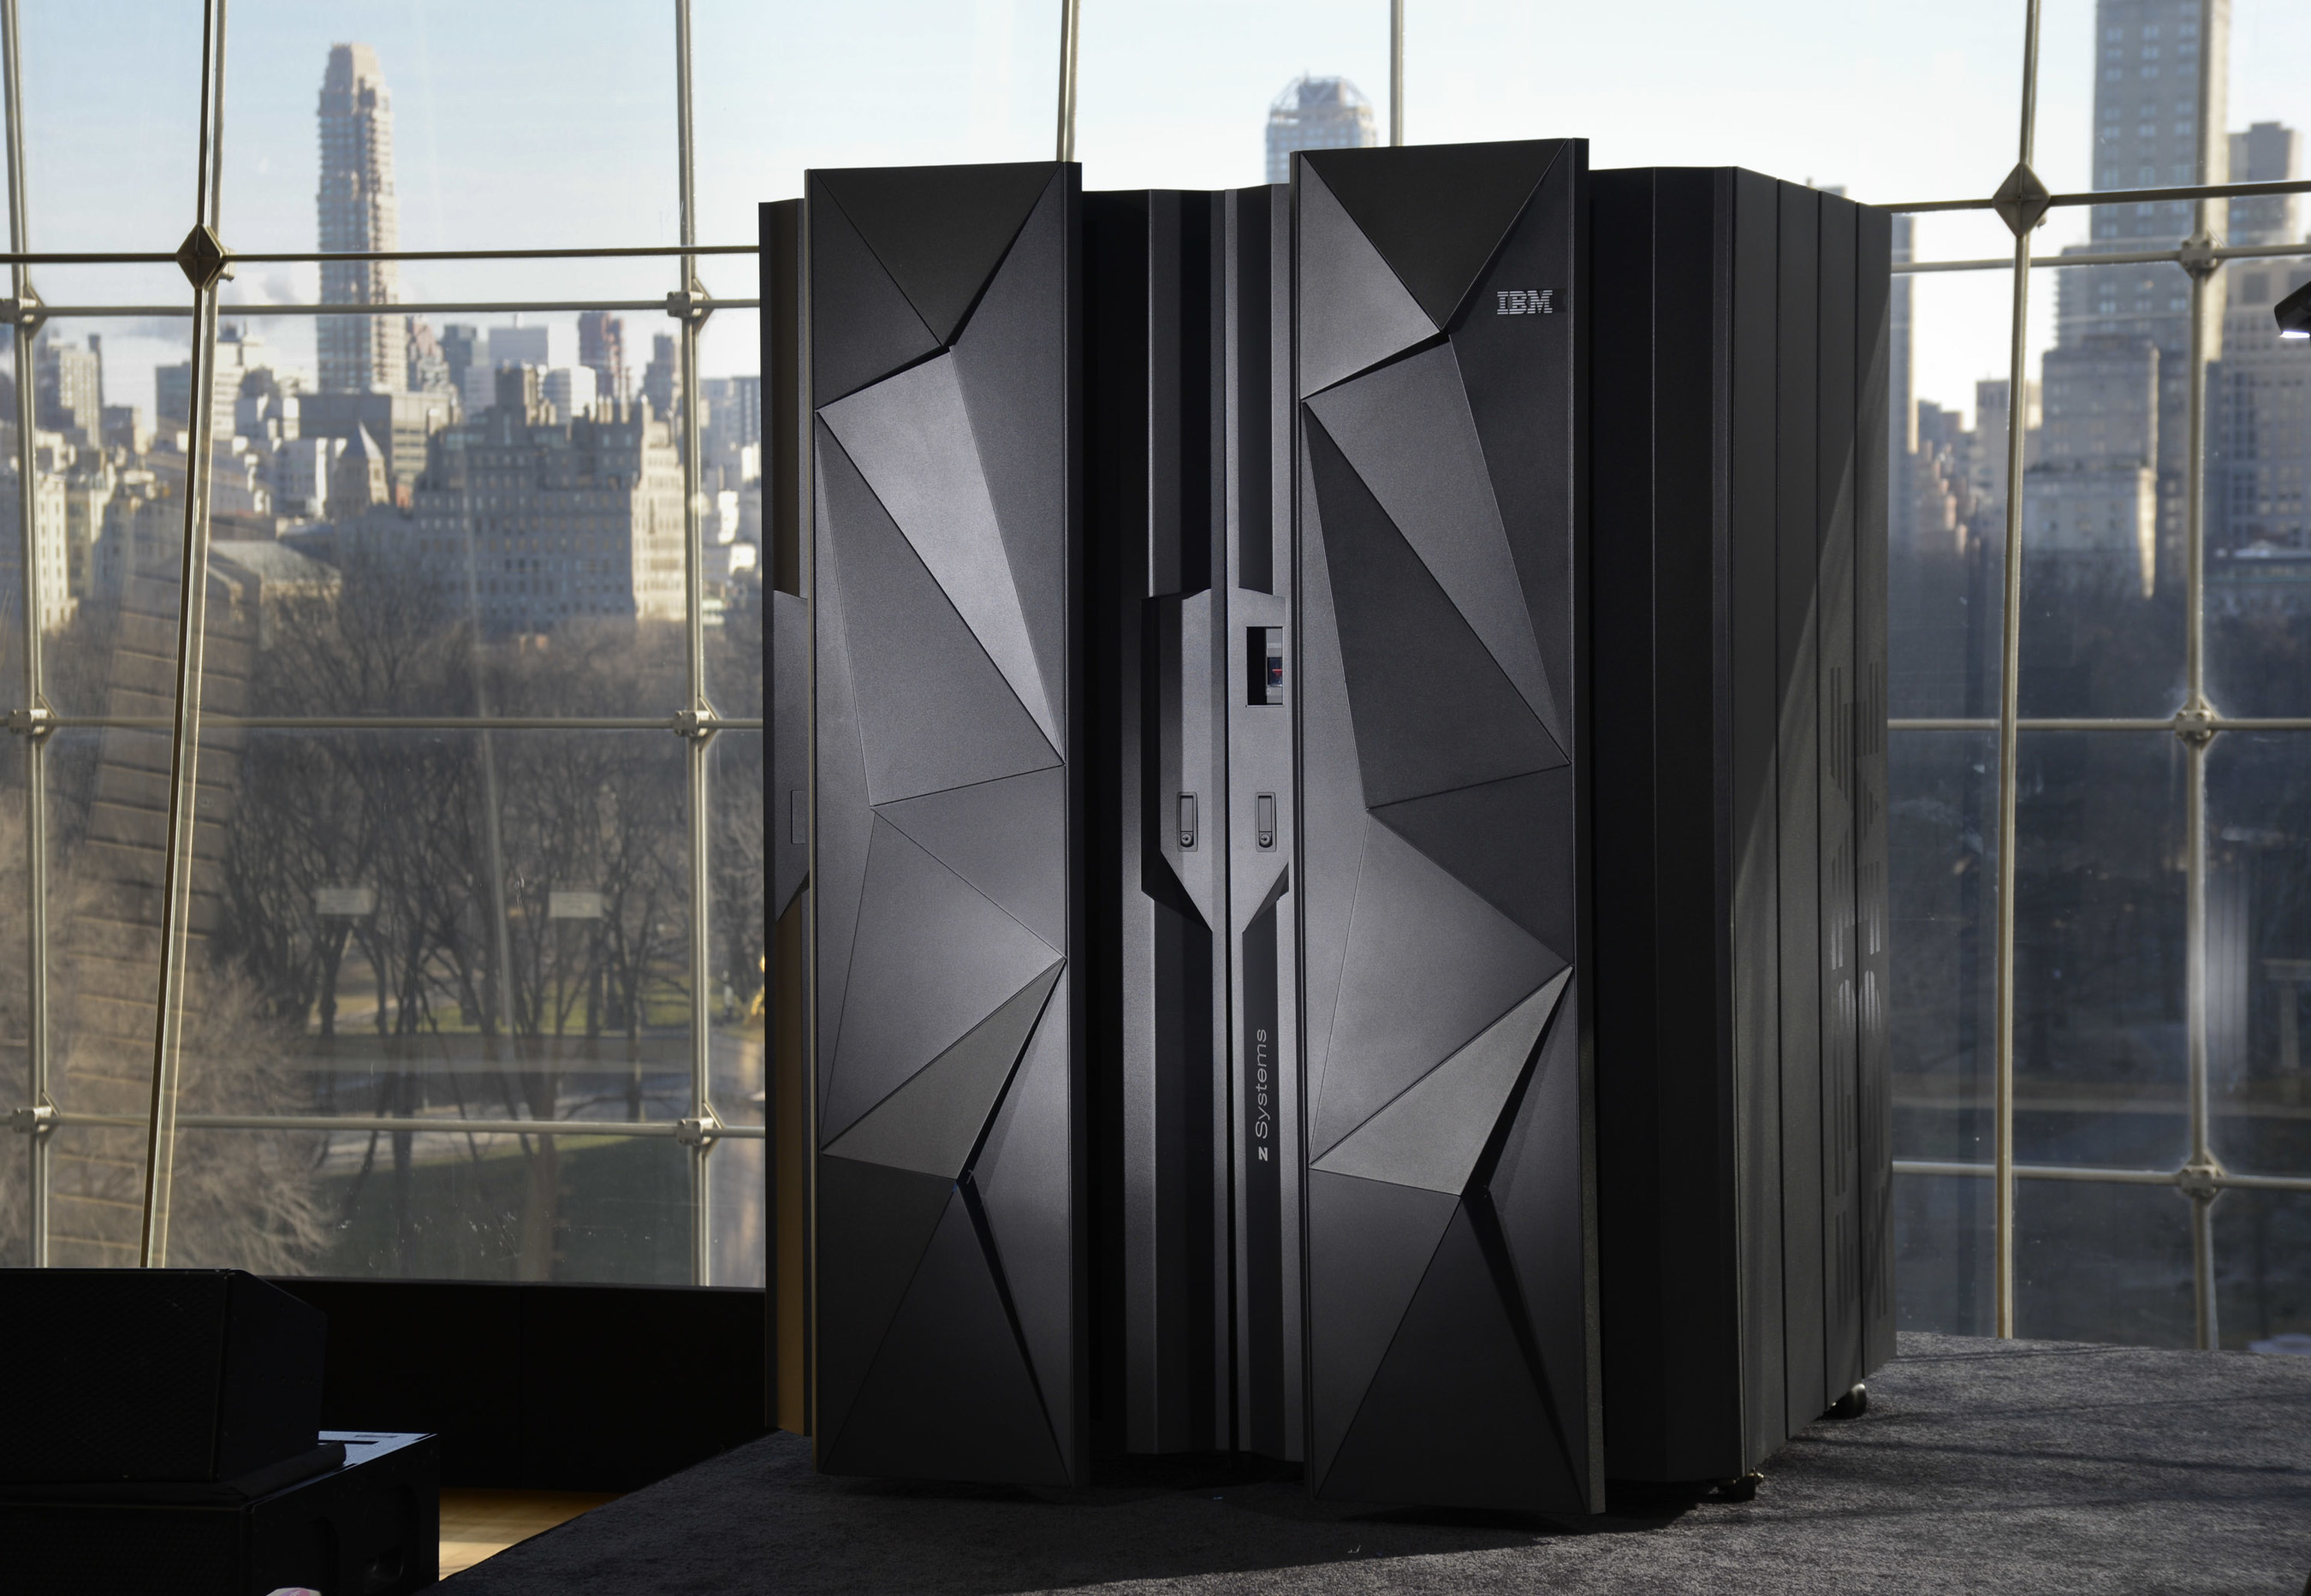 IBM unveiled its new z13 mainframe, one of the most sophisticated computer systems ever built. It culminates a $1 billion investment, five years of development, and includes more than 500 new patents and represents a collaboration with over 60 clients, underscoring IBM's commitment to providing higher-value, innovative technology for clients. (Augusto Menezes/Feature Photo Service for IBM)